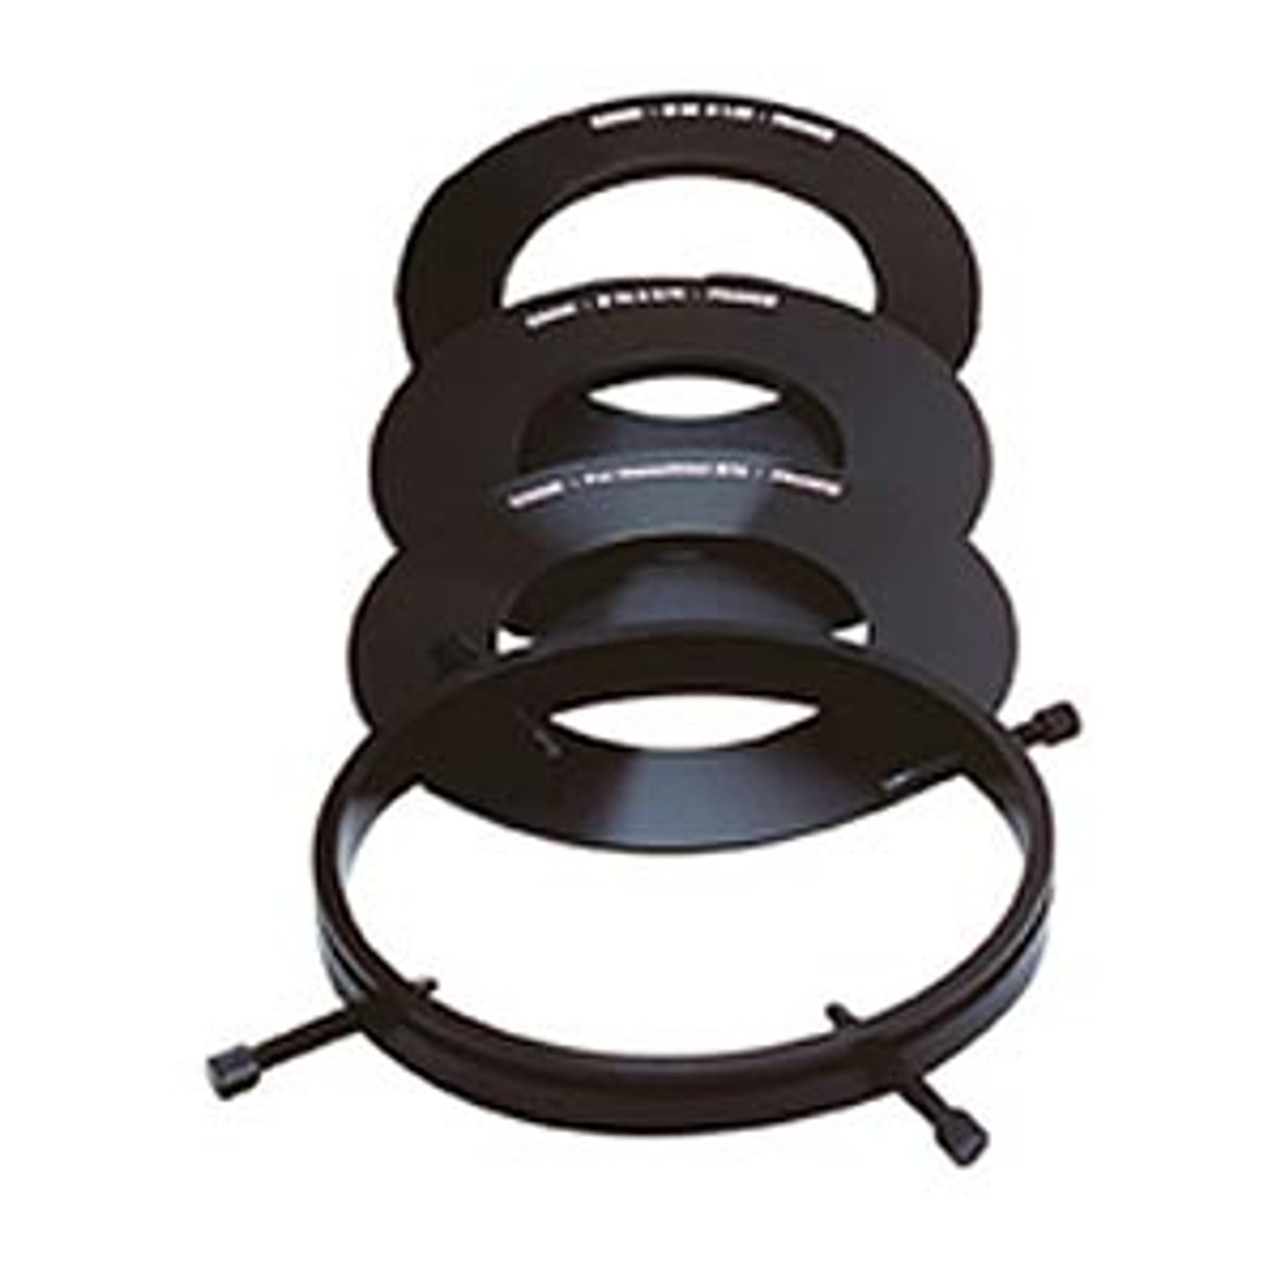 Cokin P467 67mm Adapter Ring